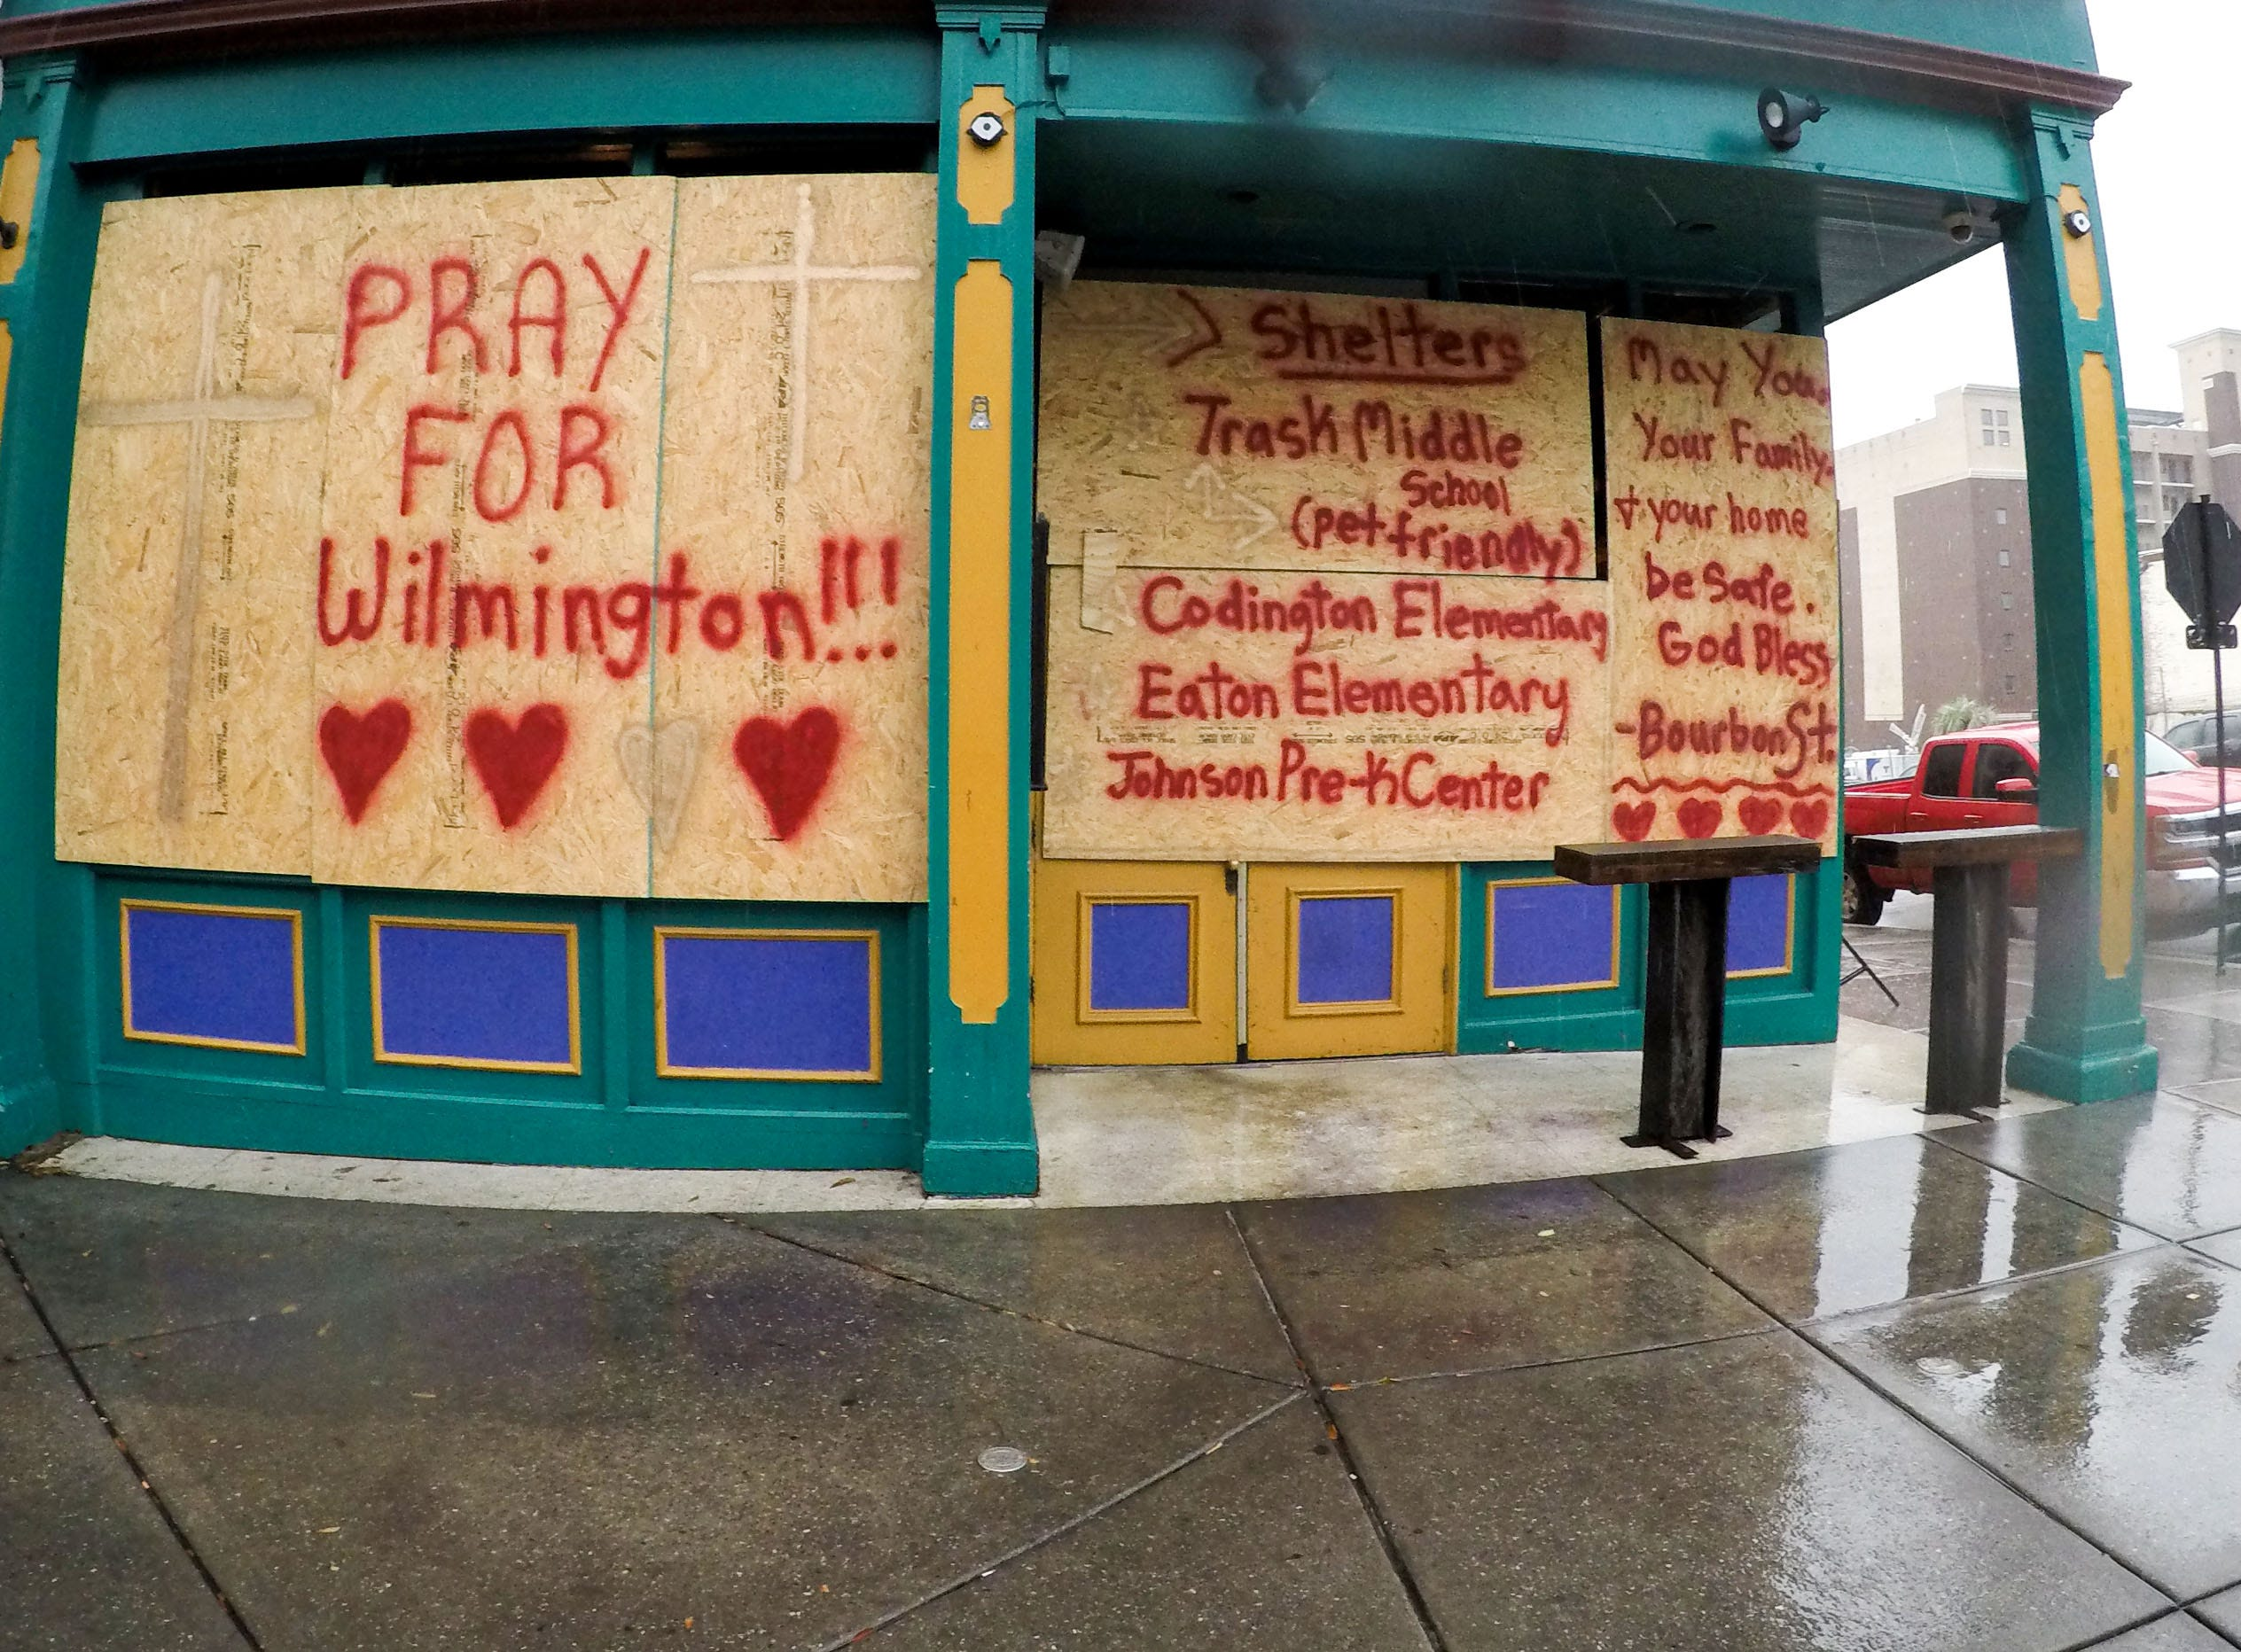 A woman stands near a business with plywood with Pray for Wilmington and a list of shelters, in downtown Wilmington, North Carolina on Thursday, September 13, 2018. (Ken Ruinard / Greenville News / Gannett USA Today Network / 2018 )